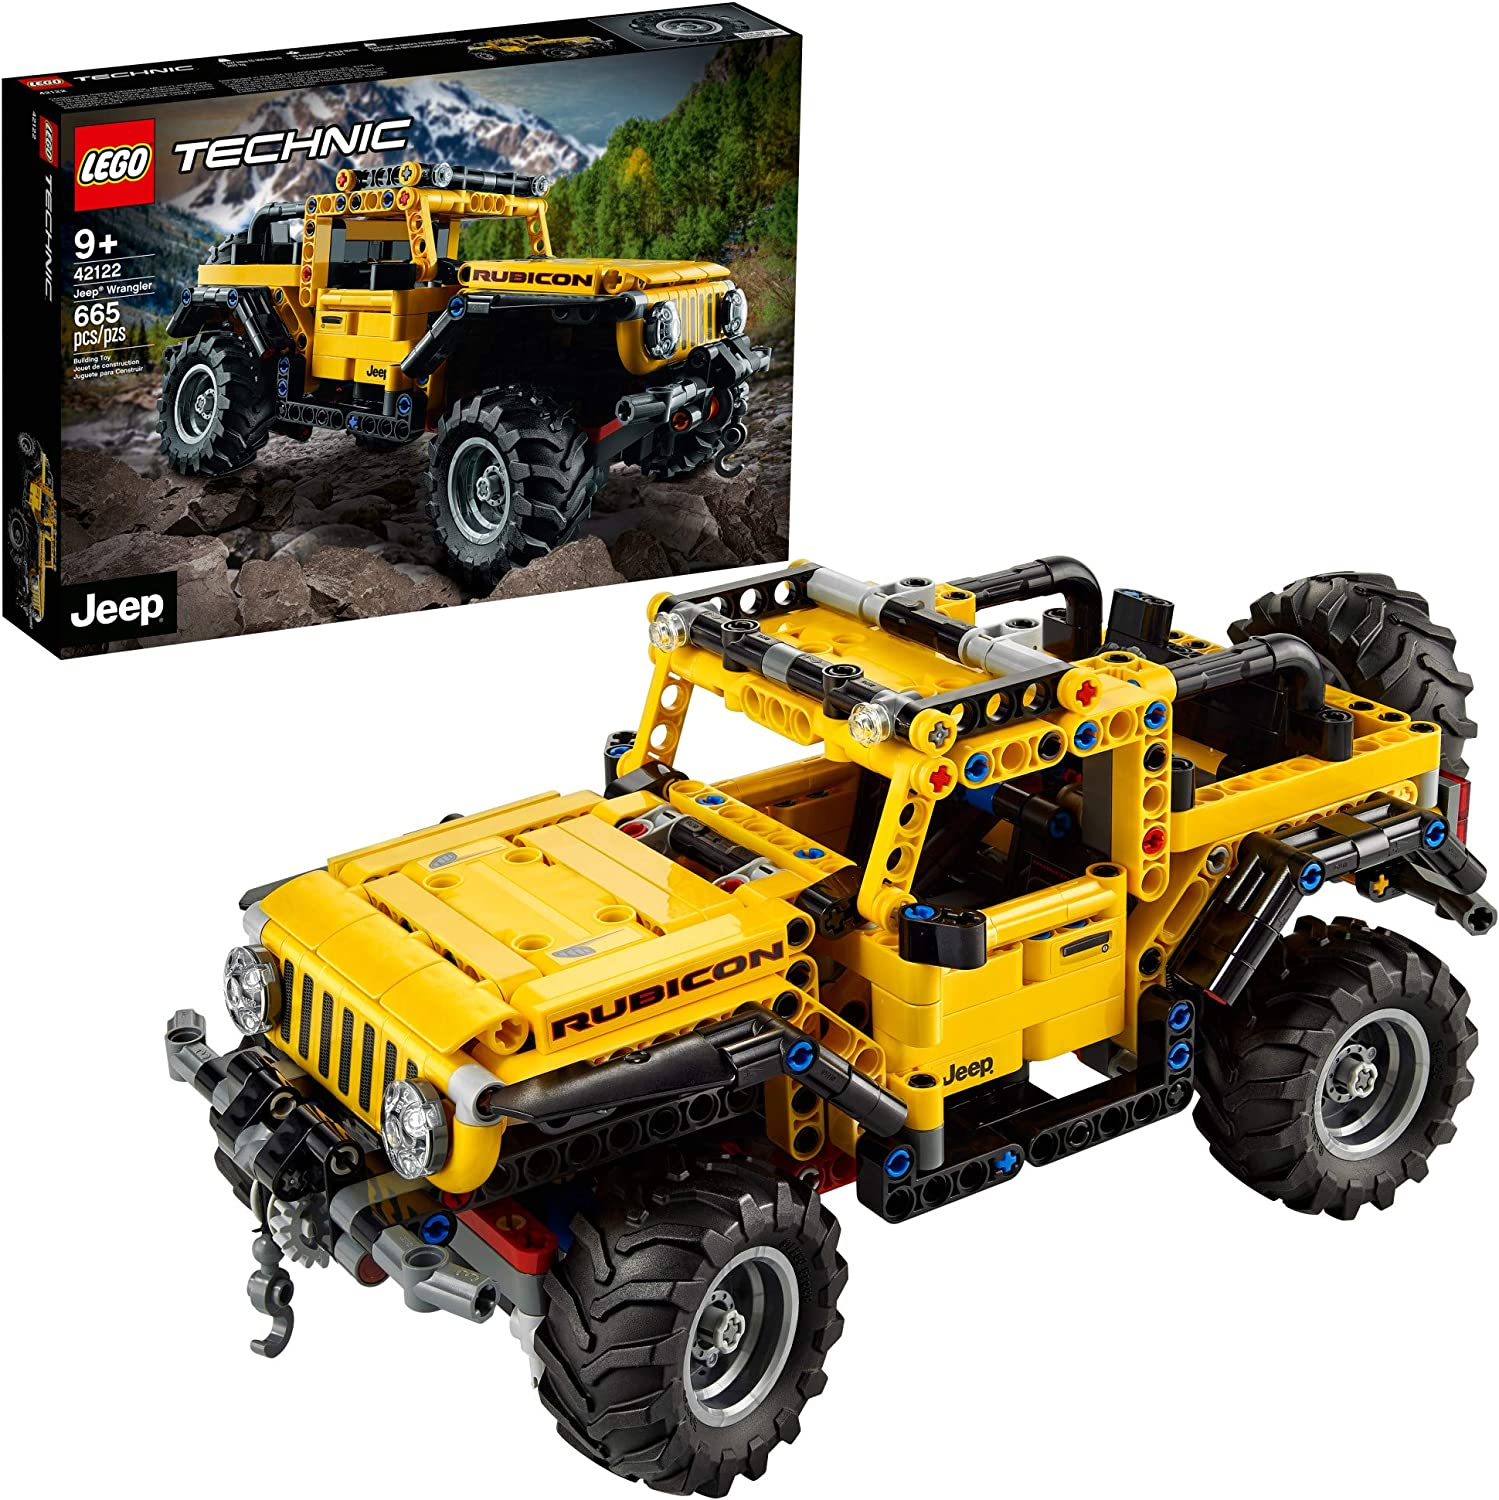 Lego Technic Jeep Wrangler - Fully assembled set and the Toy box